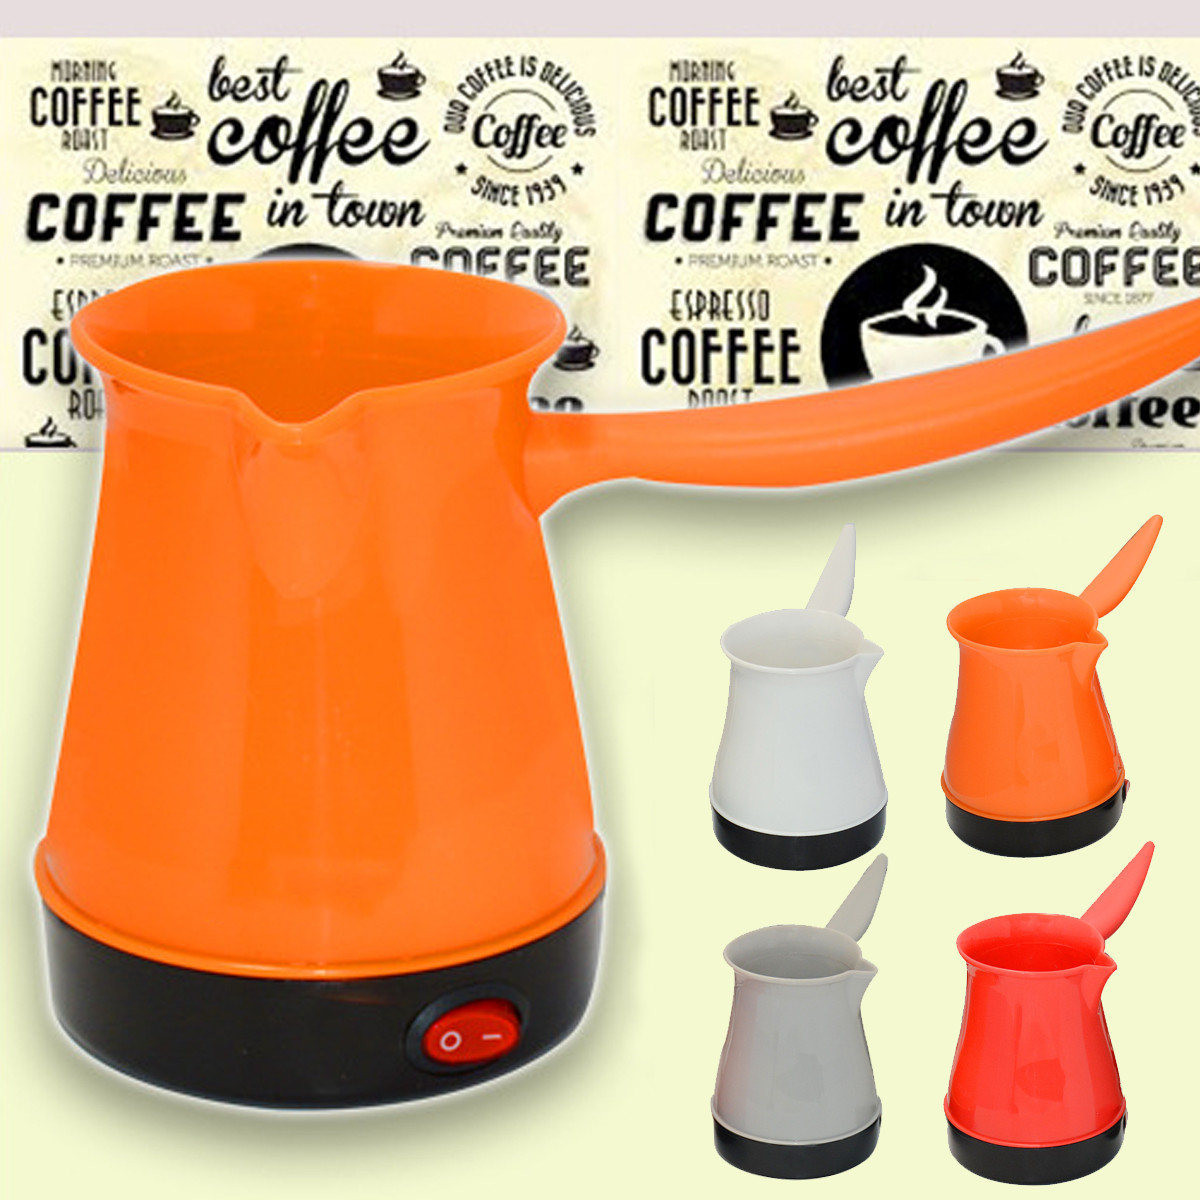 500W Home Portable Coffee Maker Electrical Turkish Coffee Maker Pot Kettle